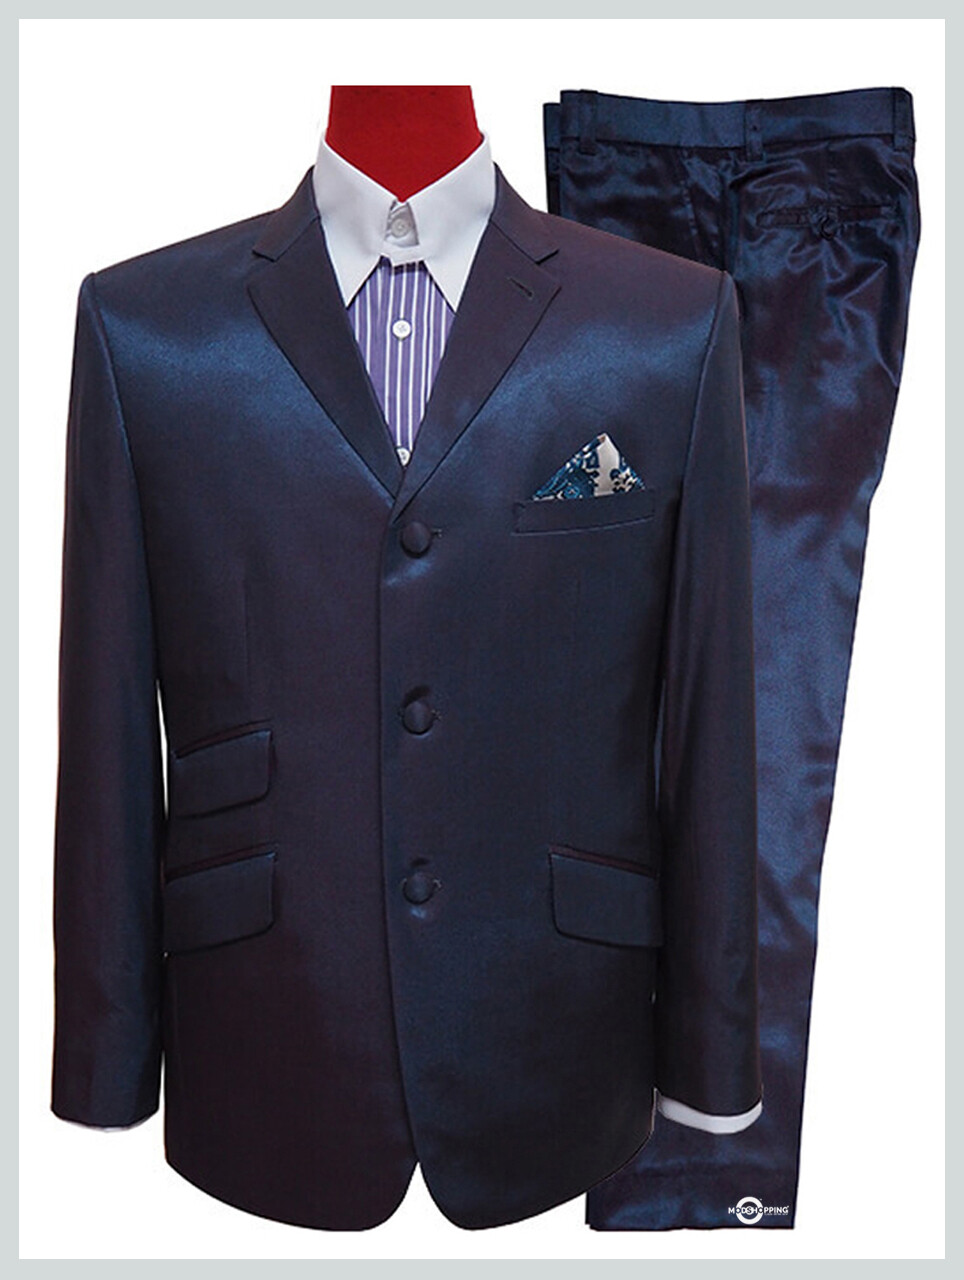 Red & Blue Two Tone Suit For Men's